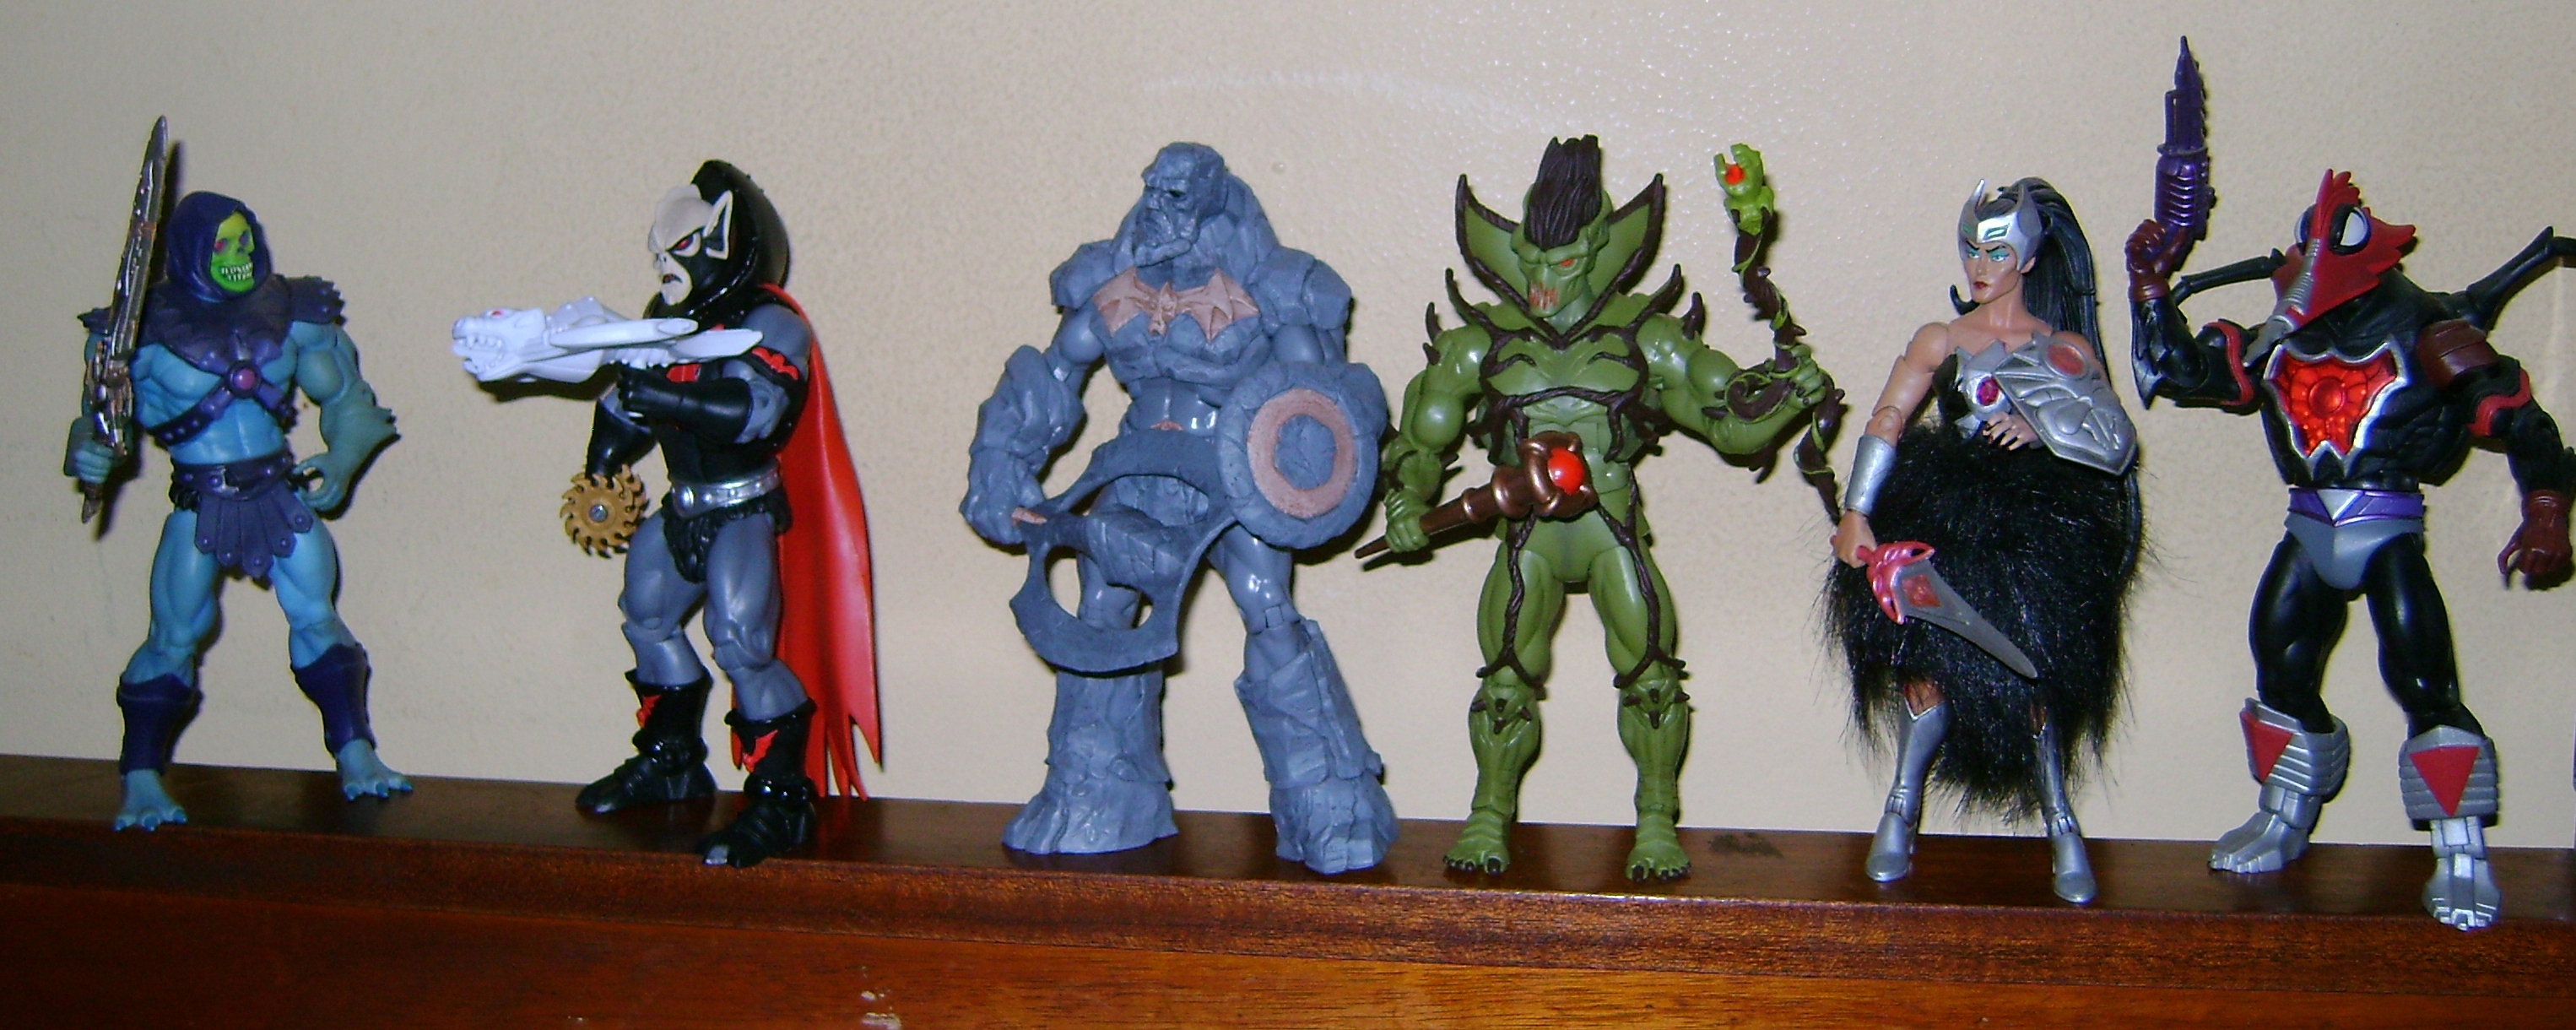 Aug 26 MOTUC 2015 And 200X Special Subscription  Aug: Buzz Saw Hordak, Evil Seed and Heads of Eternia!